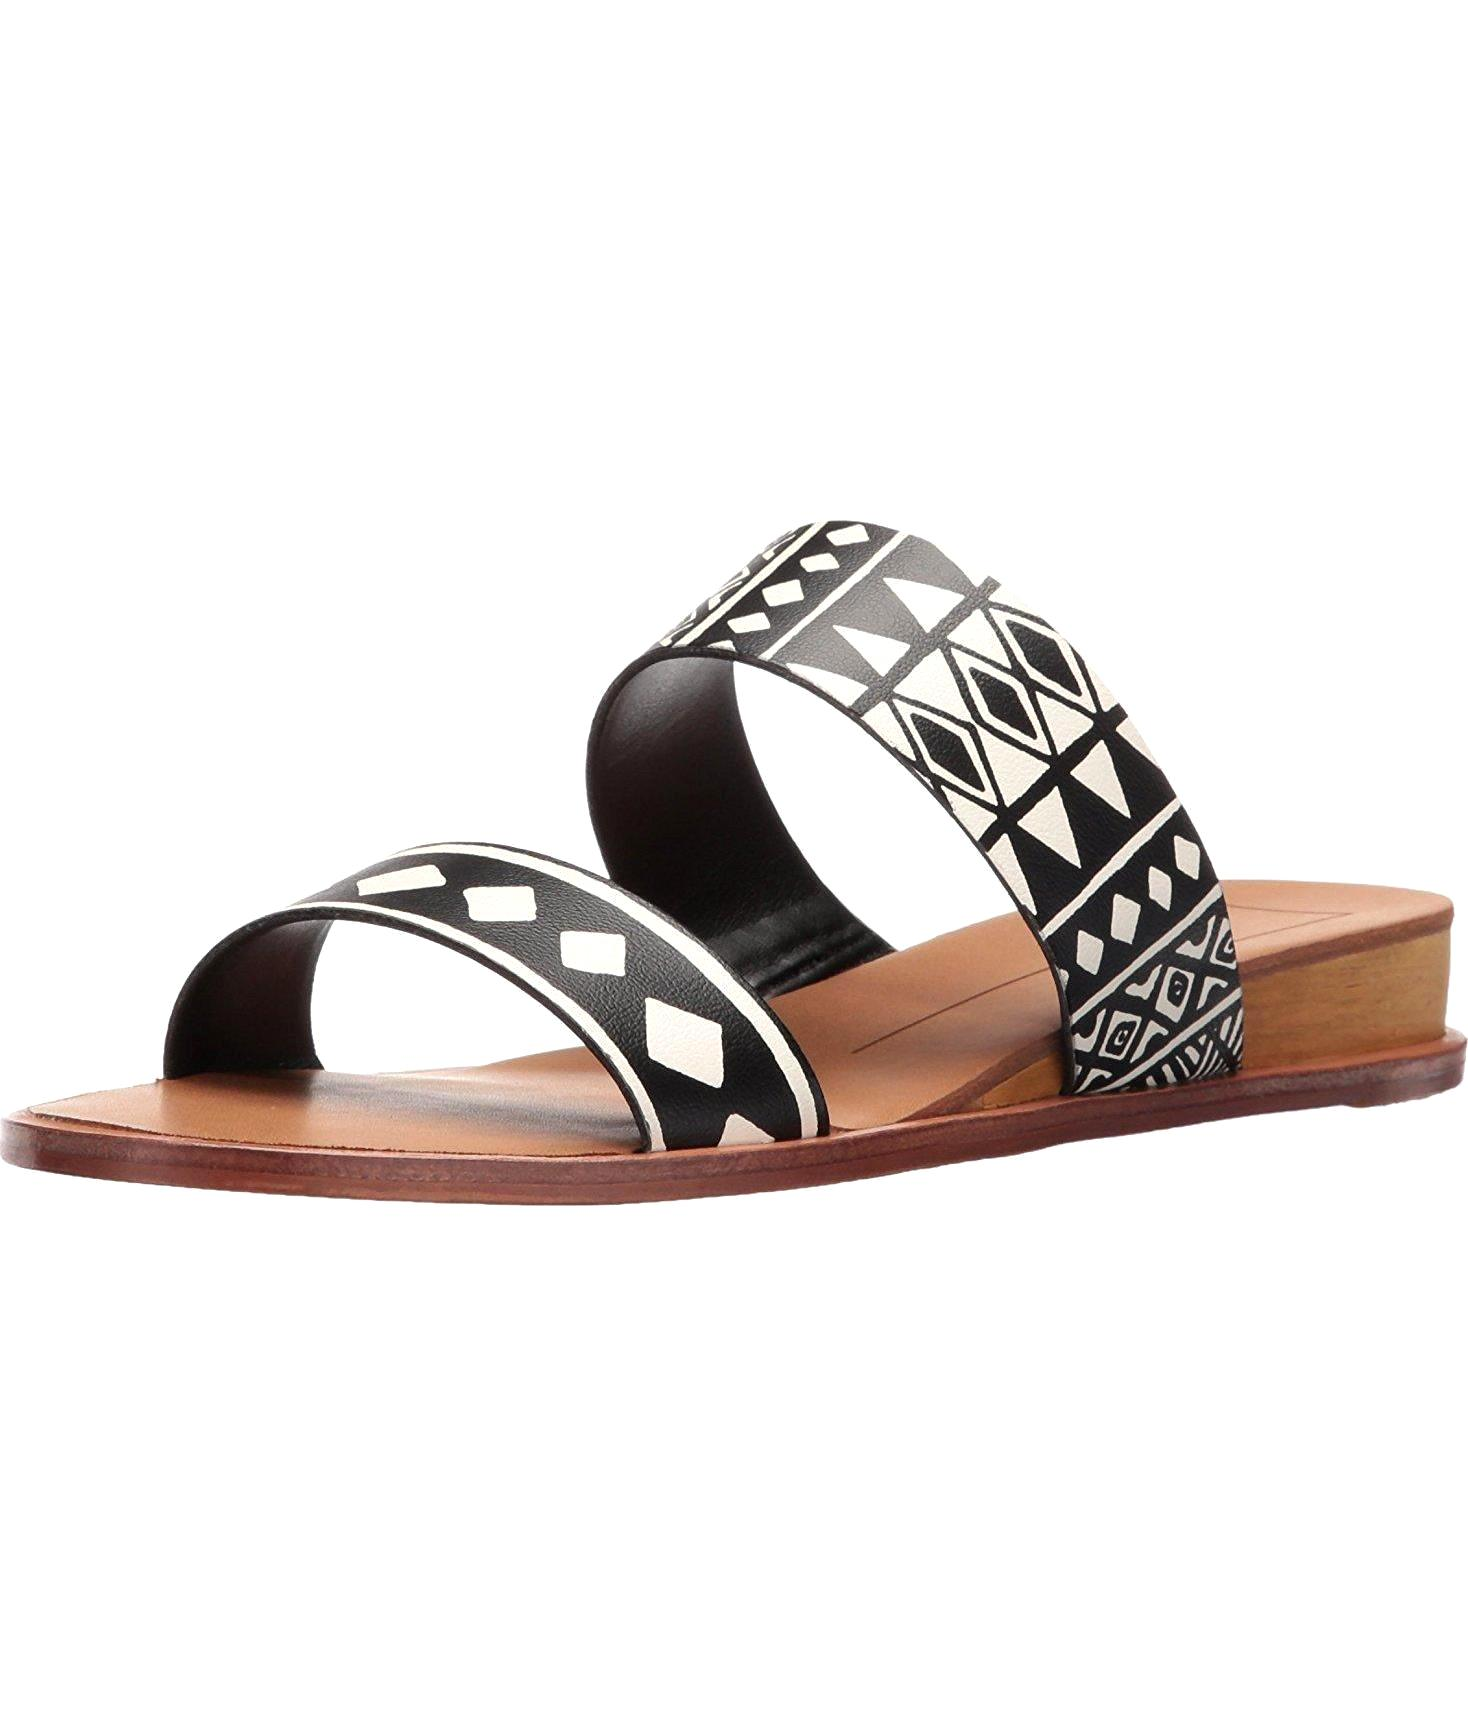 6cee40c6b9a Payce wedge sandal in tribal print stella authentic designer clothes jpg  1468x1727 Tribal print sandals